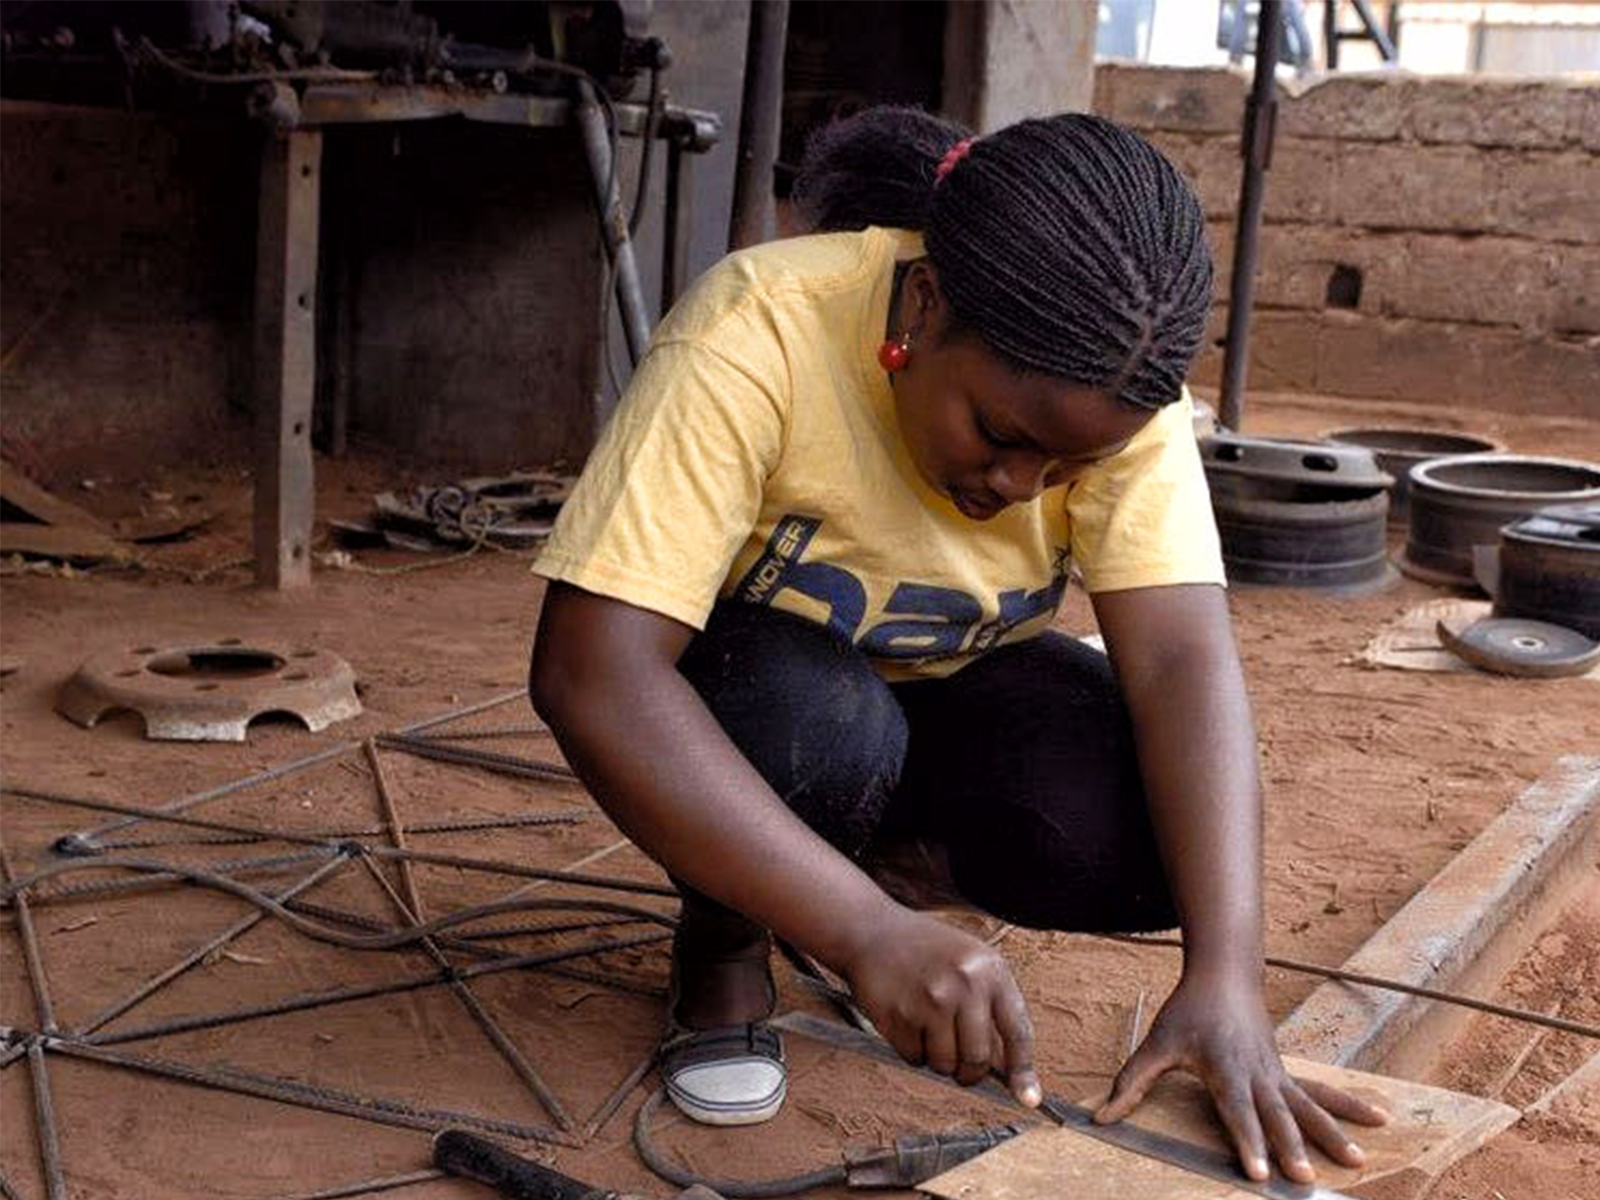 Africa is creating jobs—but the narrative is complicated